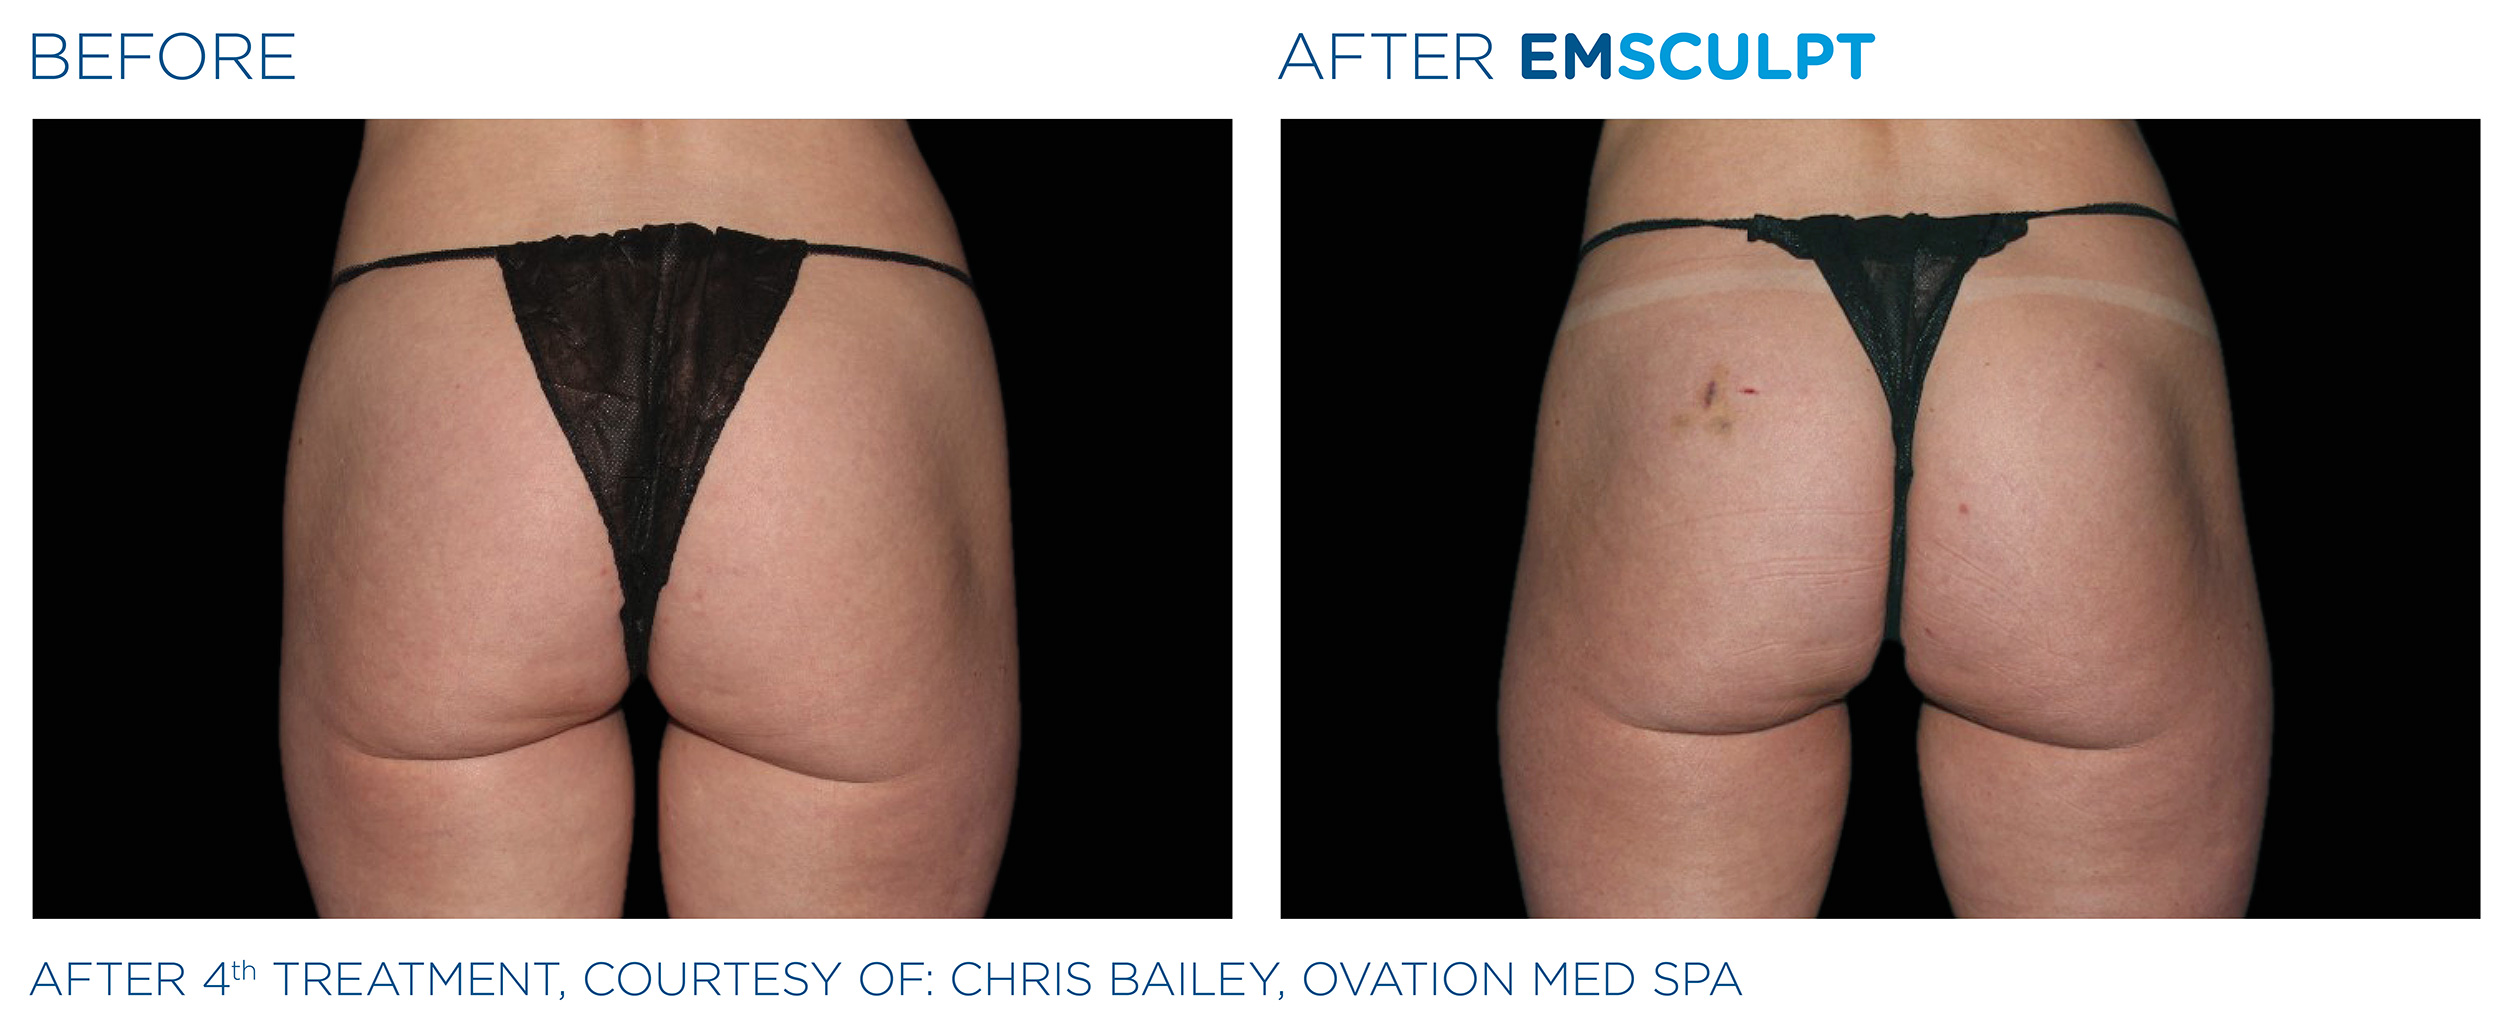 EMSCULPT Before & After Photos | Female Buttocks 14